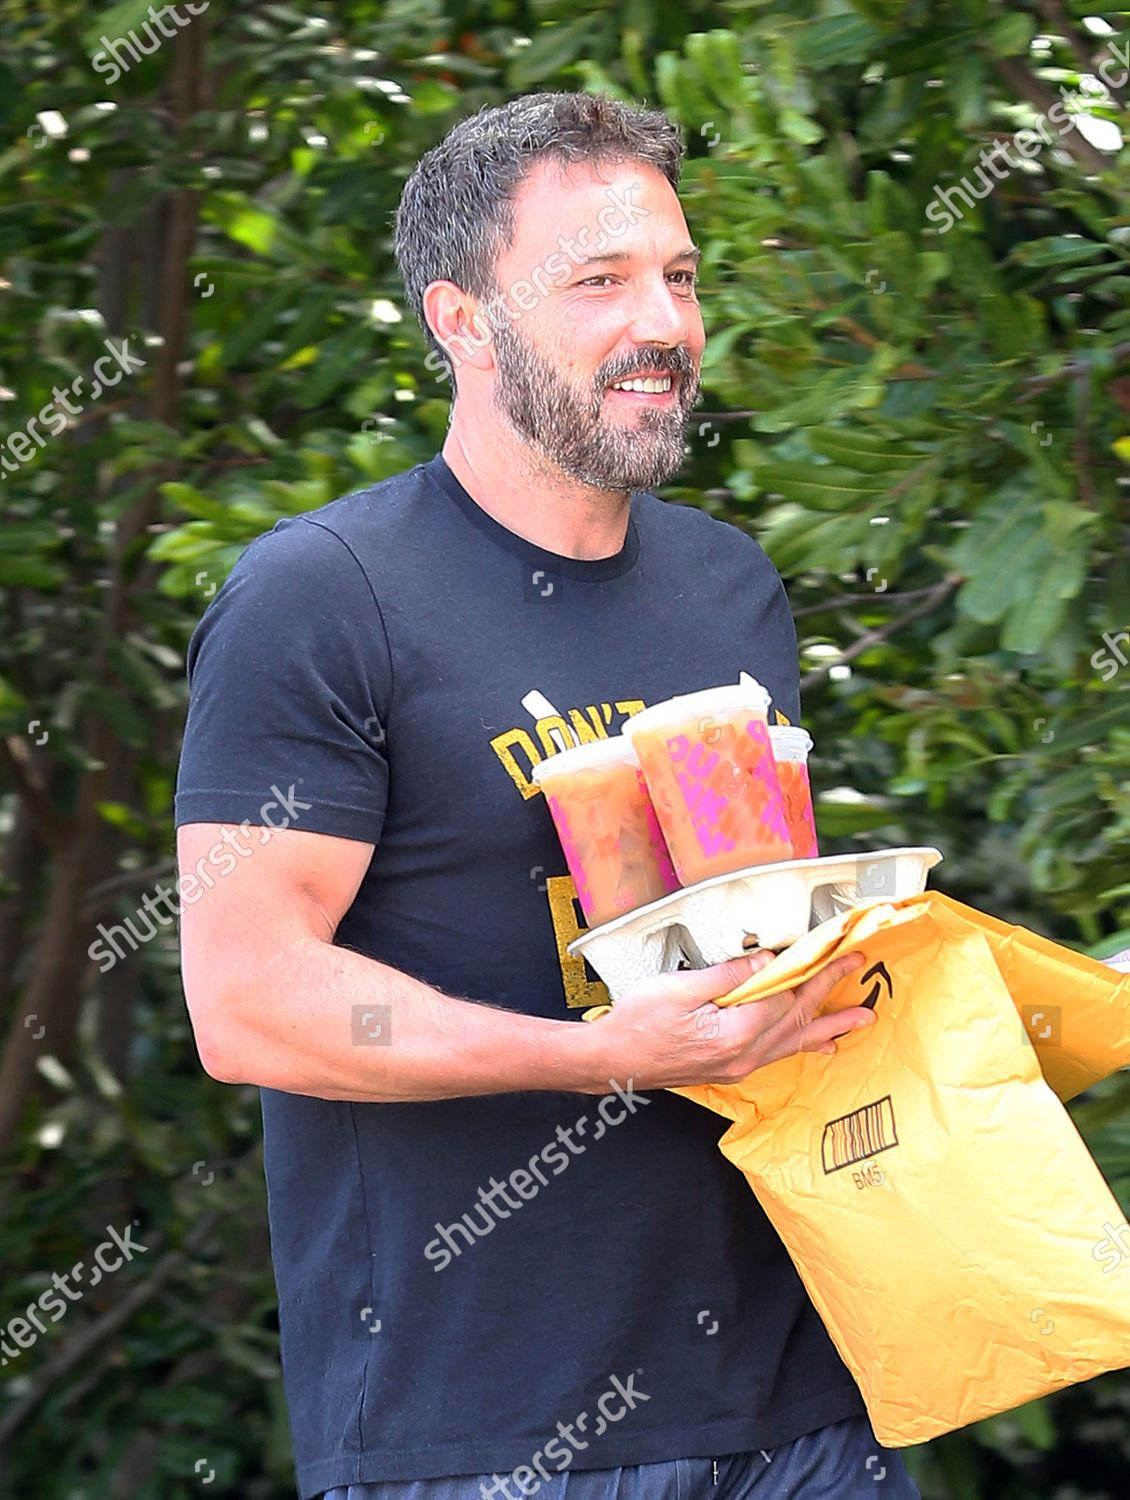 https://editorial01.shutterstock.com/wm-preview-1500/10664180h/e4c5af78/ben-affleck-out-and-about-los-angeles-usa-shutterstock-editorial-10664180h.jpg